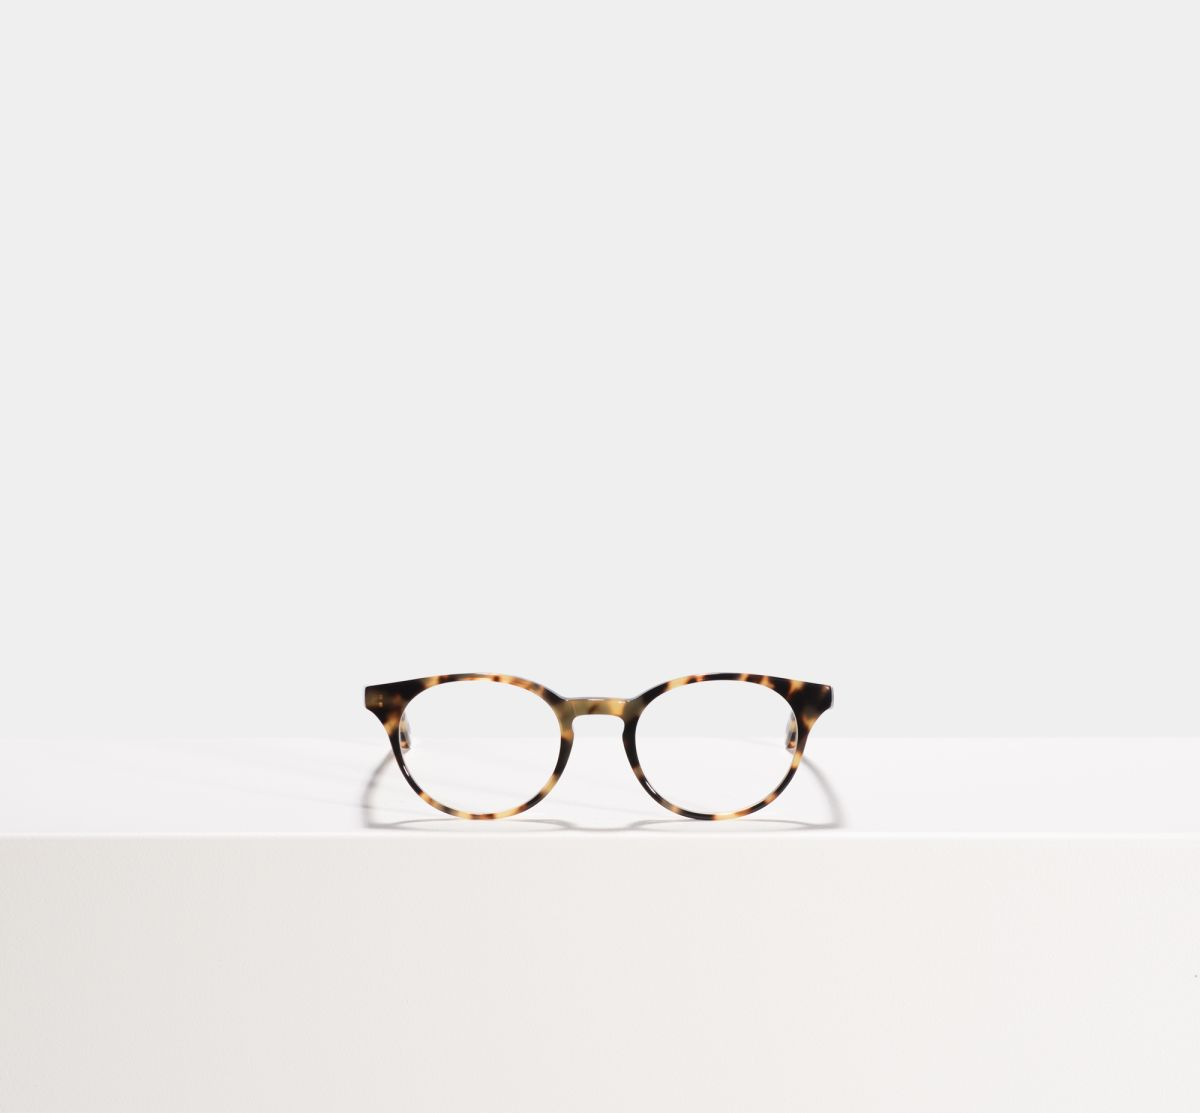 Steve rund Acetat glasses in Bananas by Ace & Tate